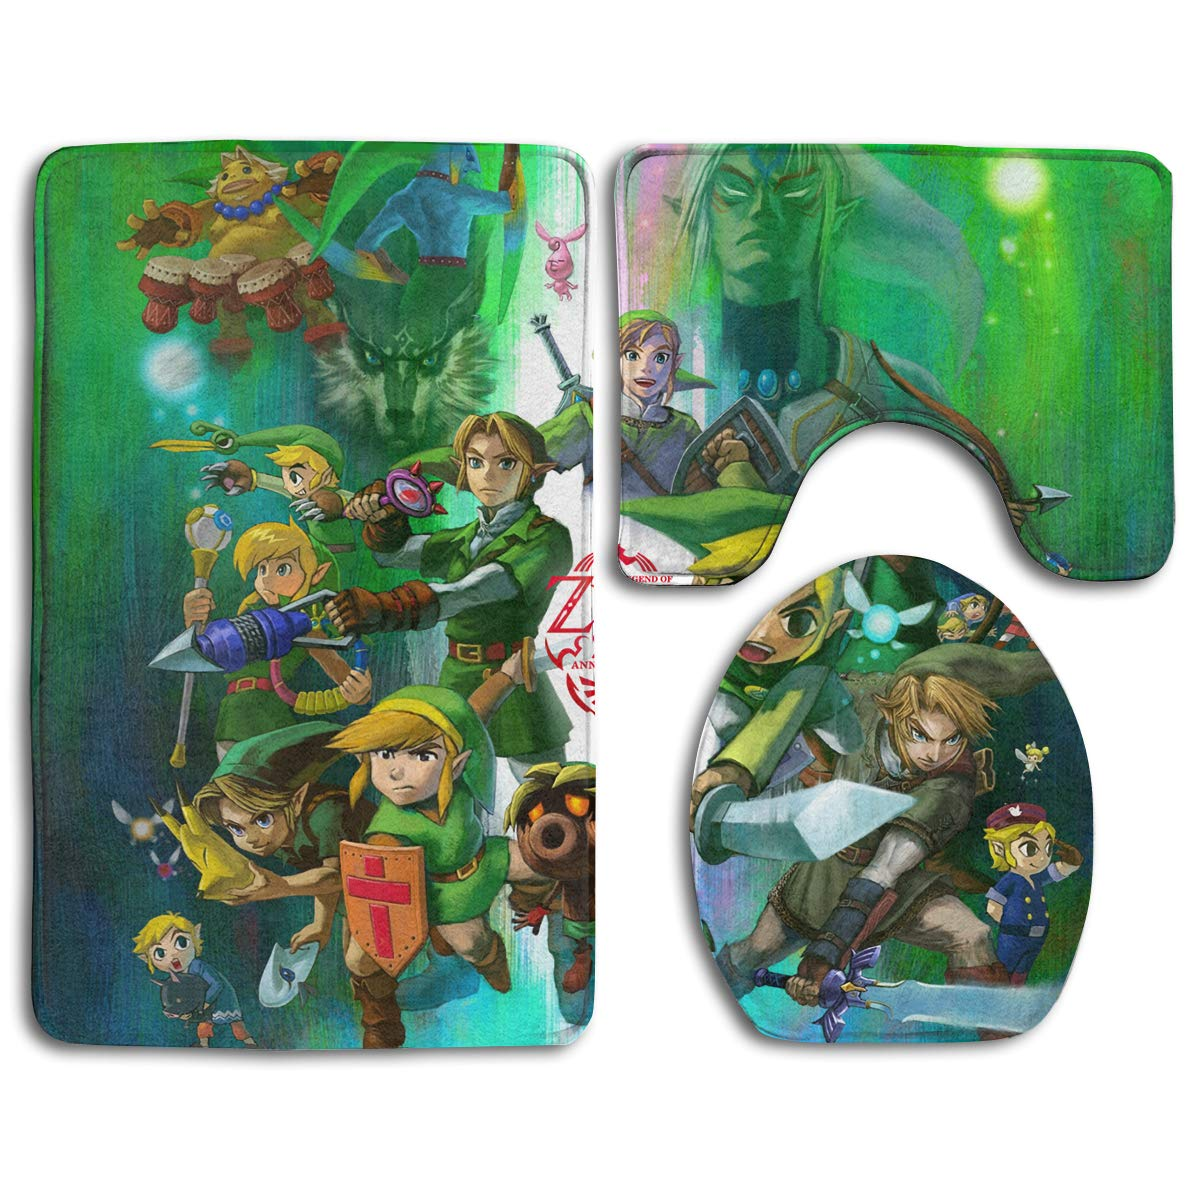 POOPEDD The Legend of Zelda Flannel Bathroom Rug Set,Bath Mat,Shower Mat and Toilet Cover,Non Slip and Extra Soft Toilet Kit,Anti Slippery Rug,3 Piece